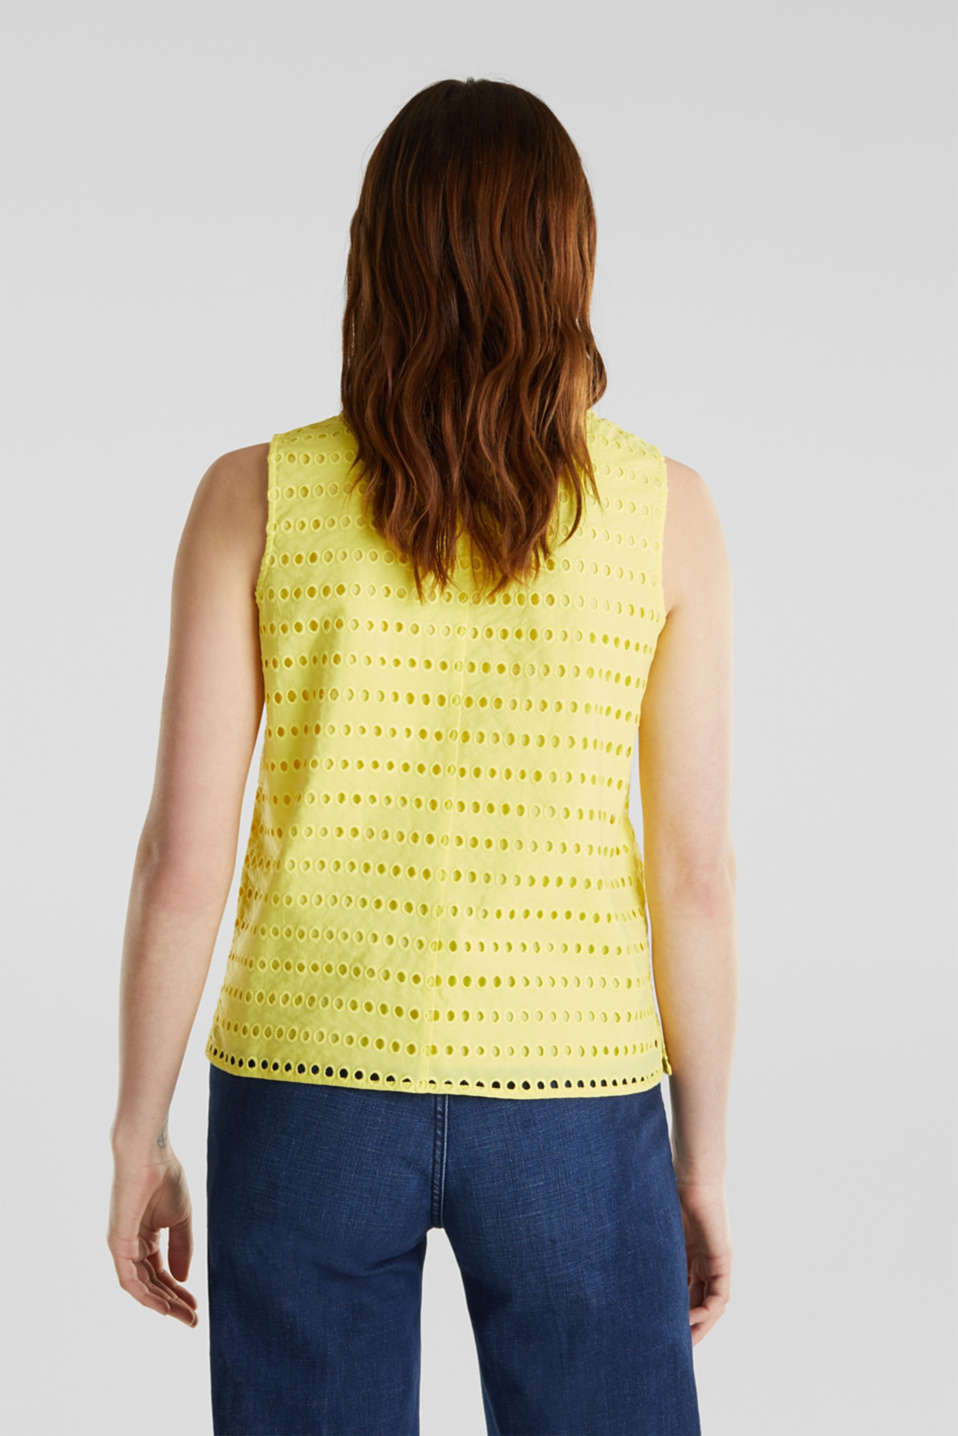 Blouse top, 100% cotton, BRIGHT YELLOW, detail image number 3